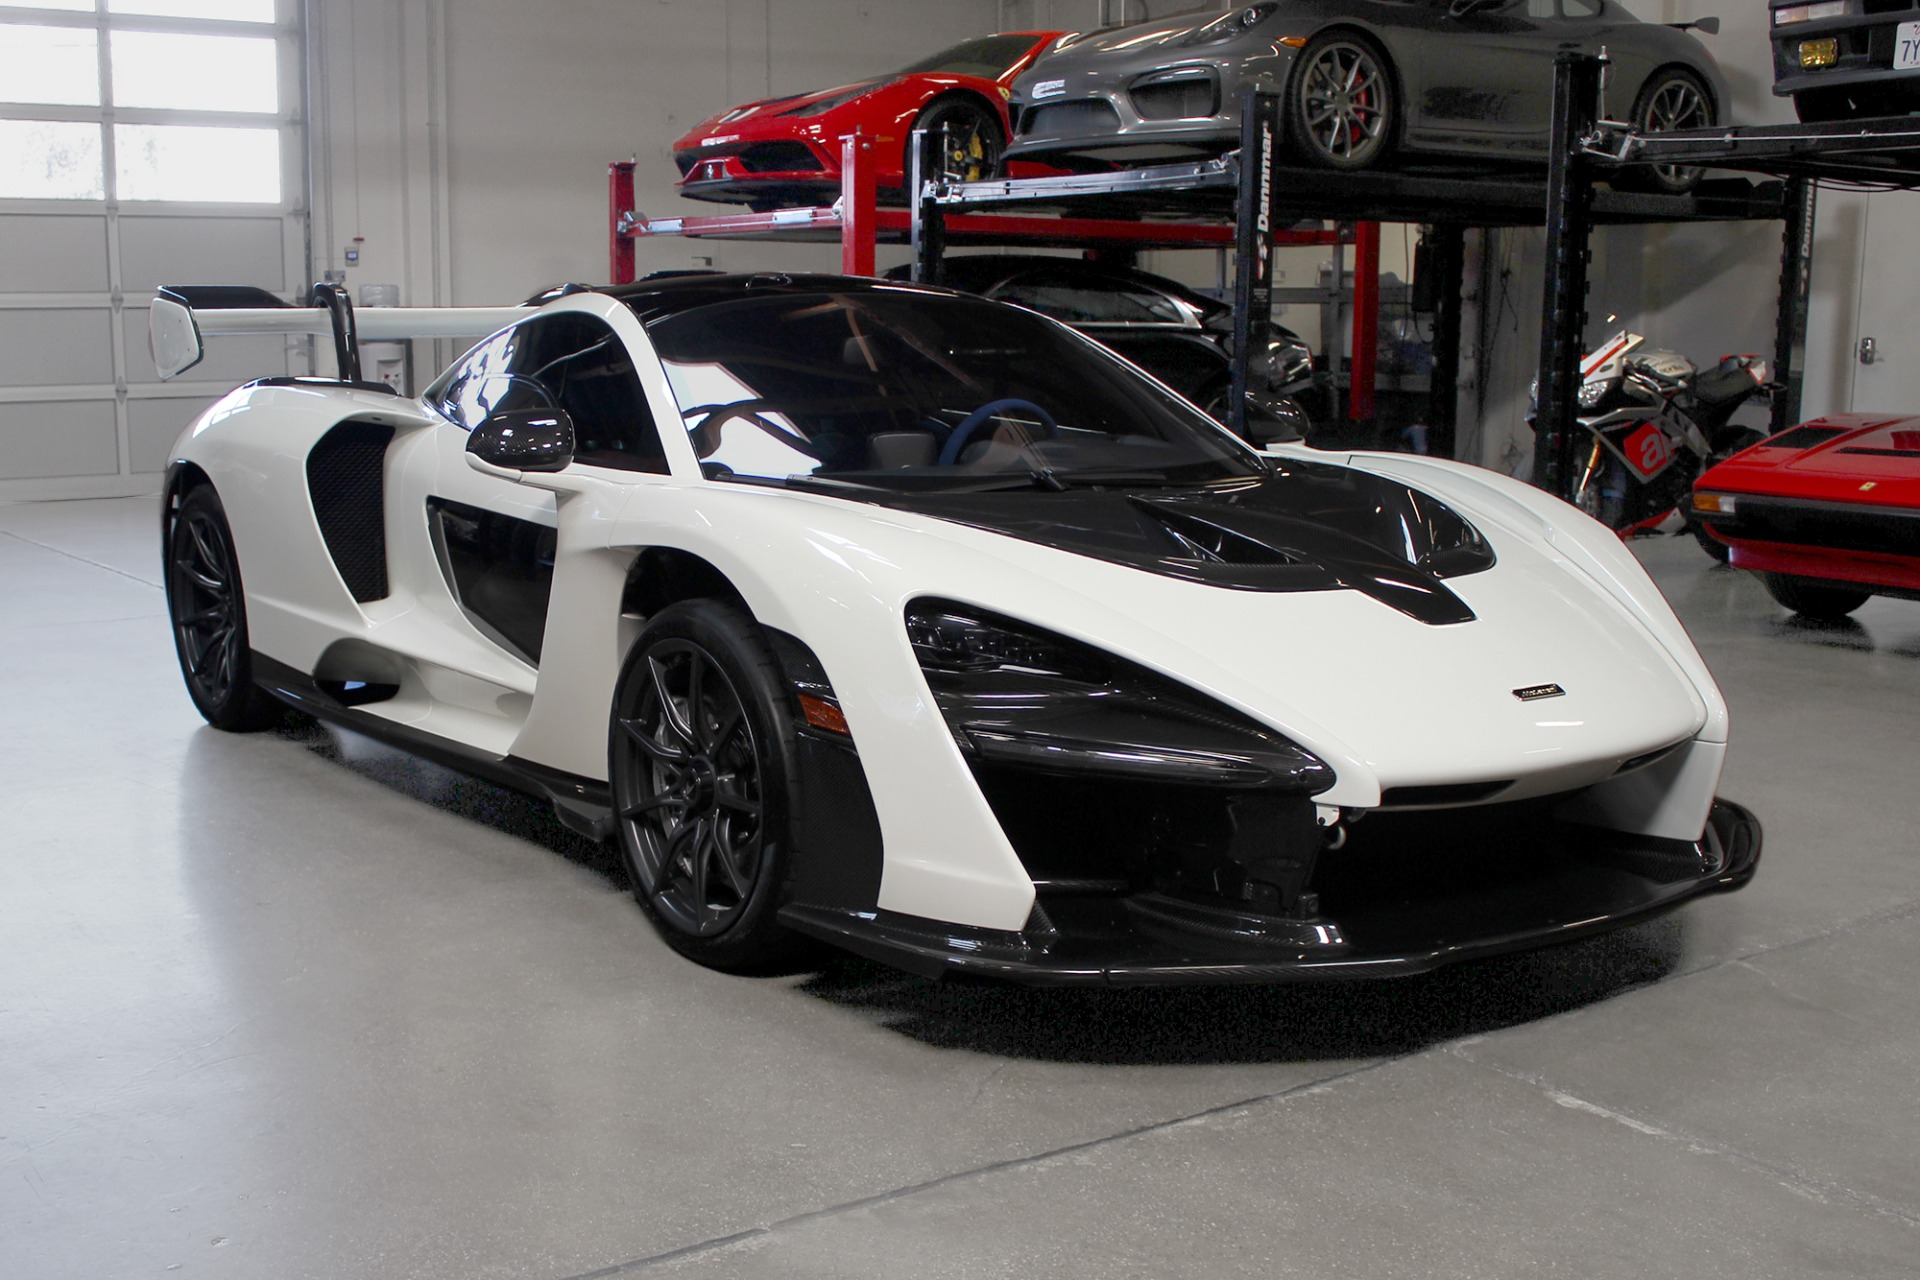 Used 2019 McLaren Senna for sale $999,995 at San Francisco Sports Cars in San Carlos CA 94070 1